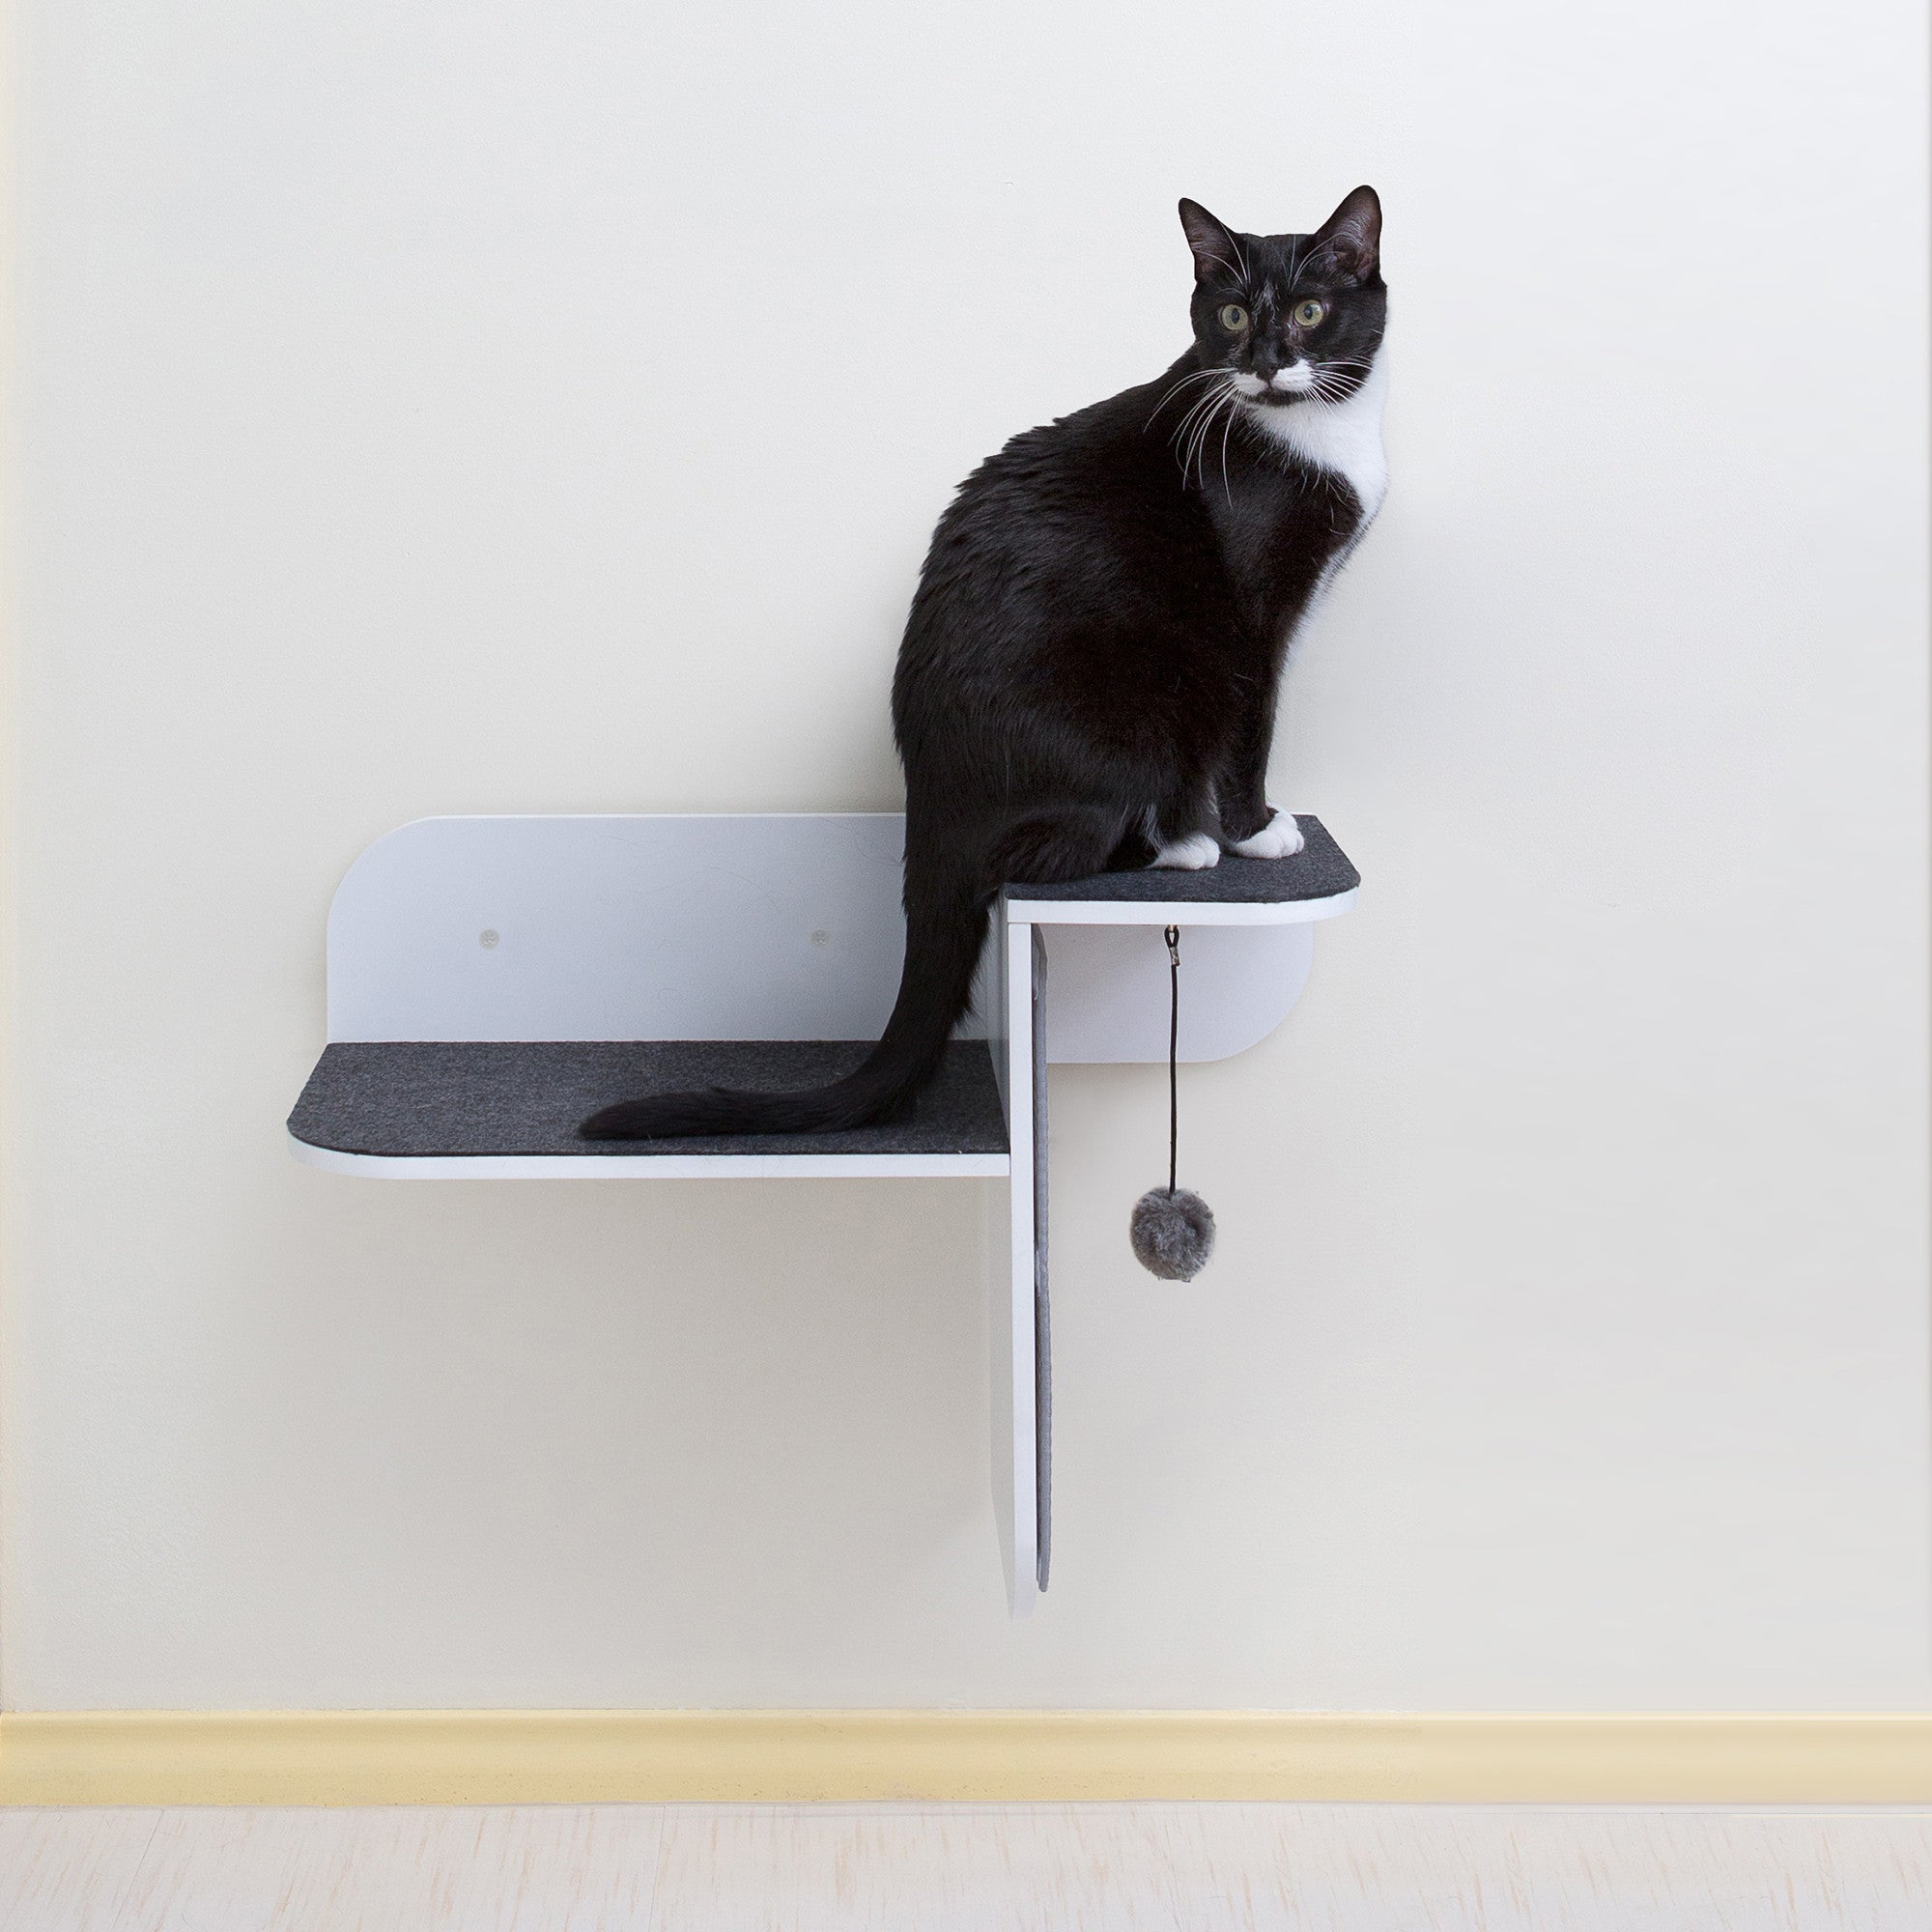 Hauspanther Step Perch Wall Mounted Cat Perch Scratcher